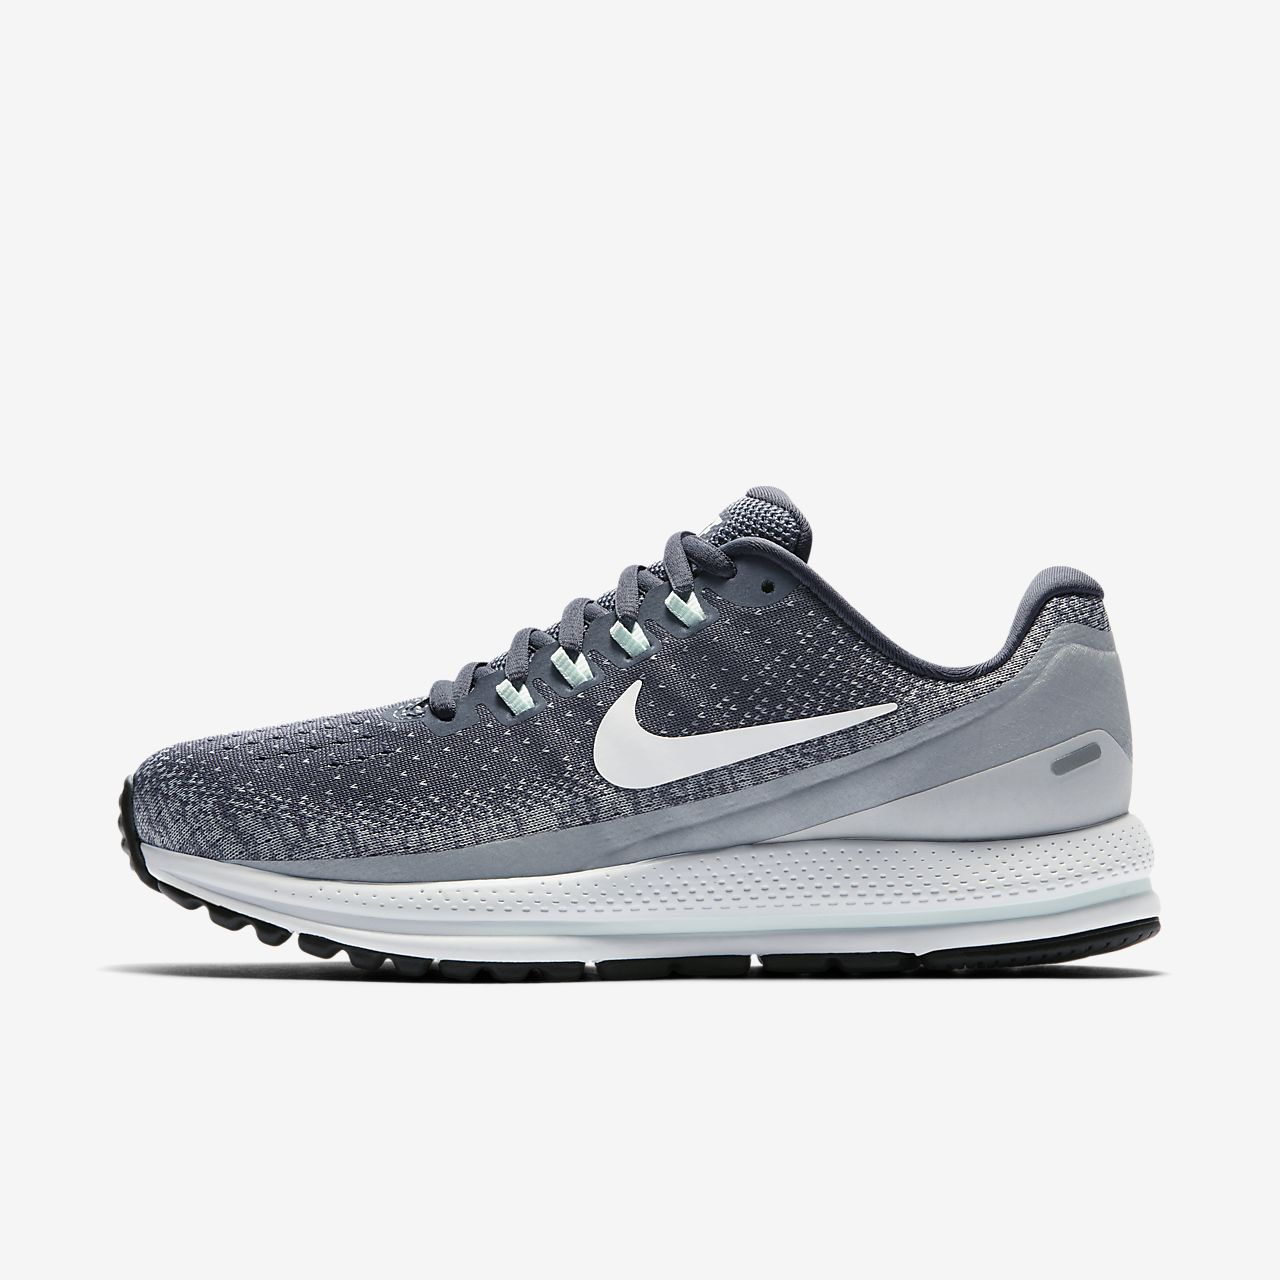 Chaussure de running Nike Air Zoom Vomero 13 pour Femme